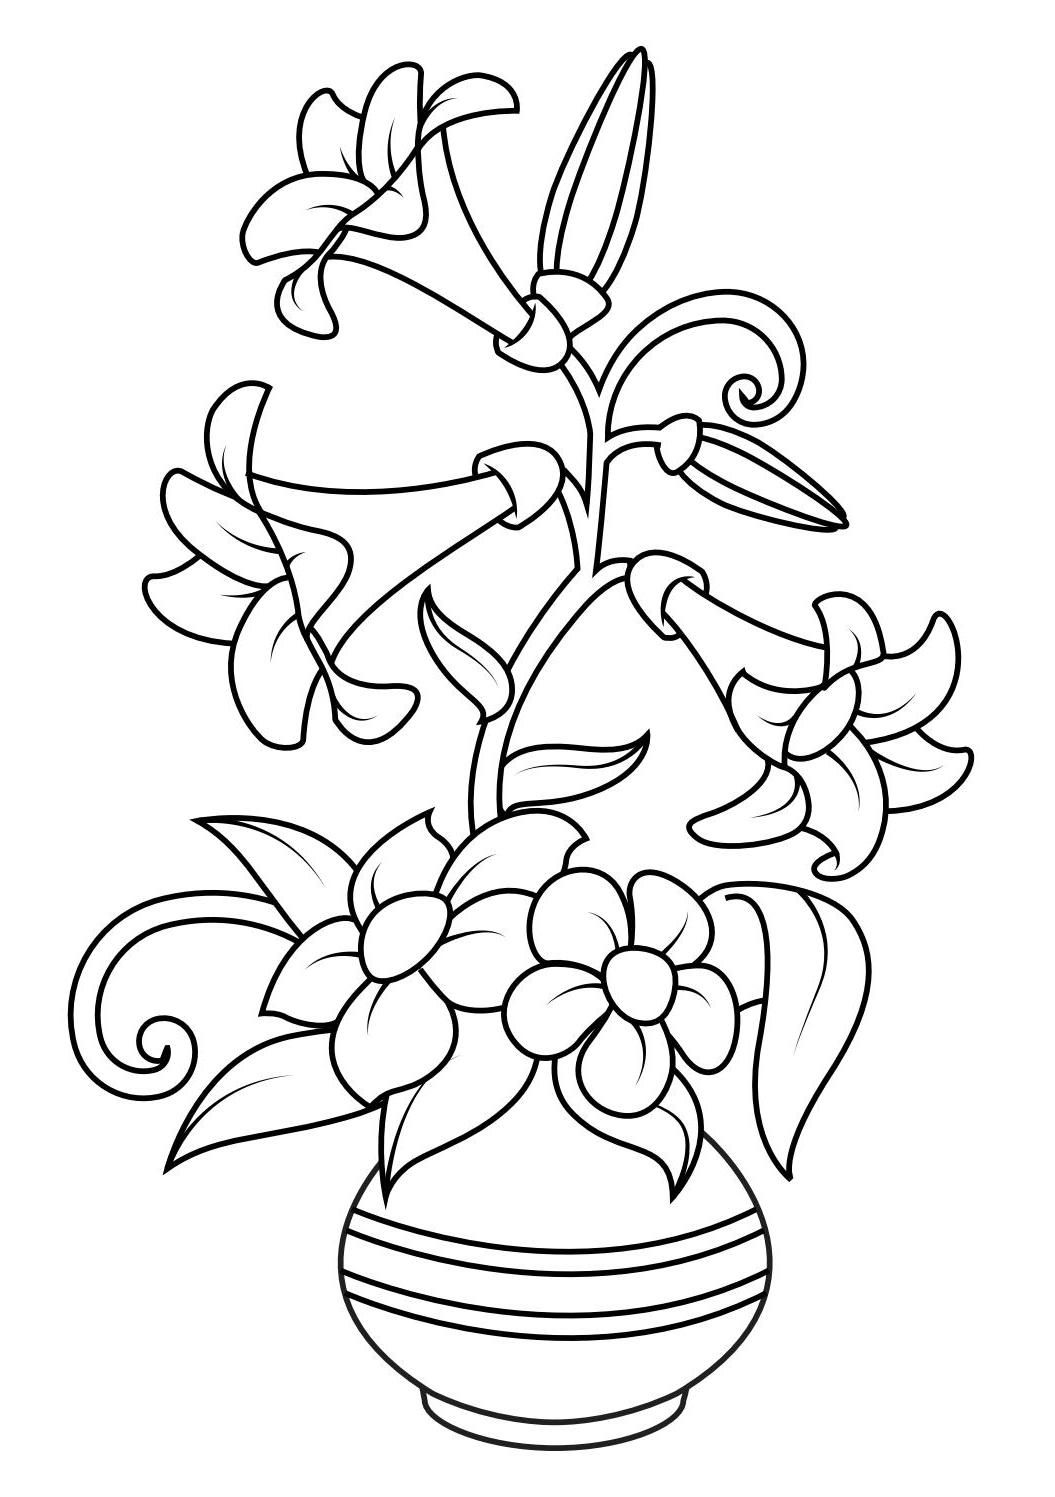 ClippedOnIssuu From Flower Coloring Pages